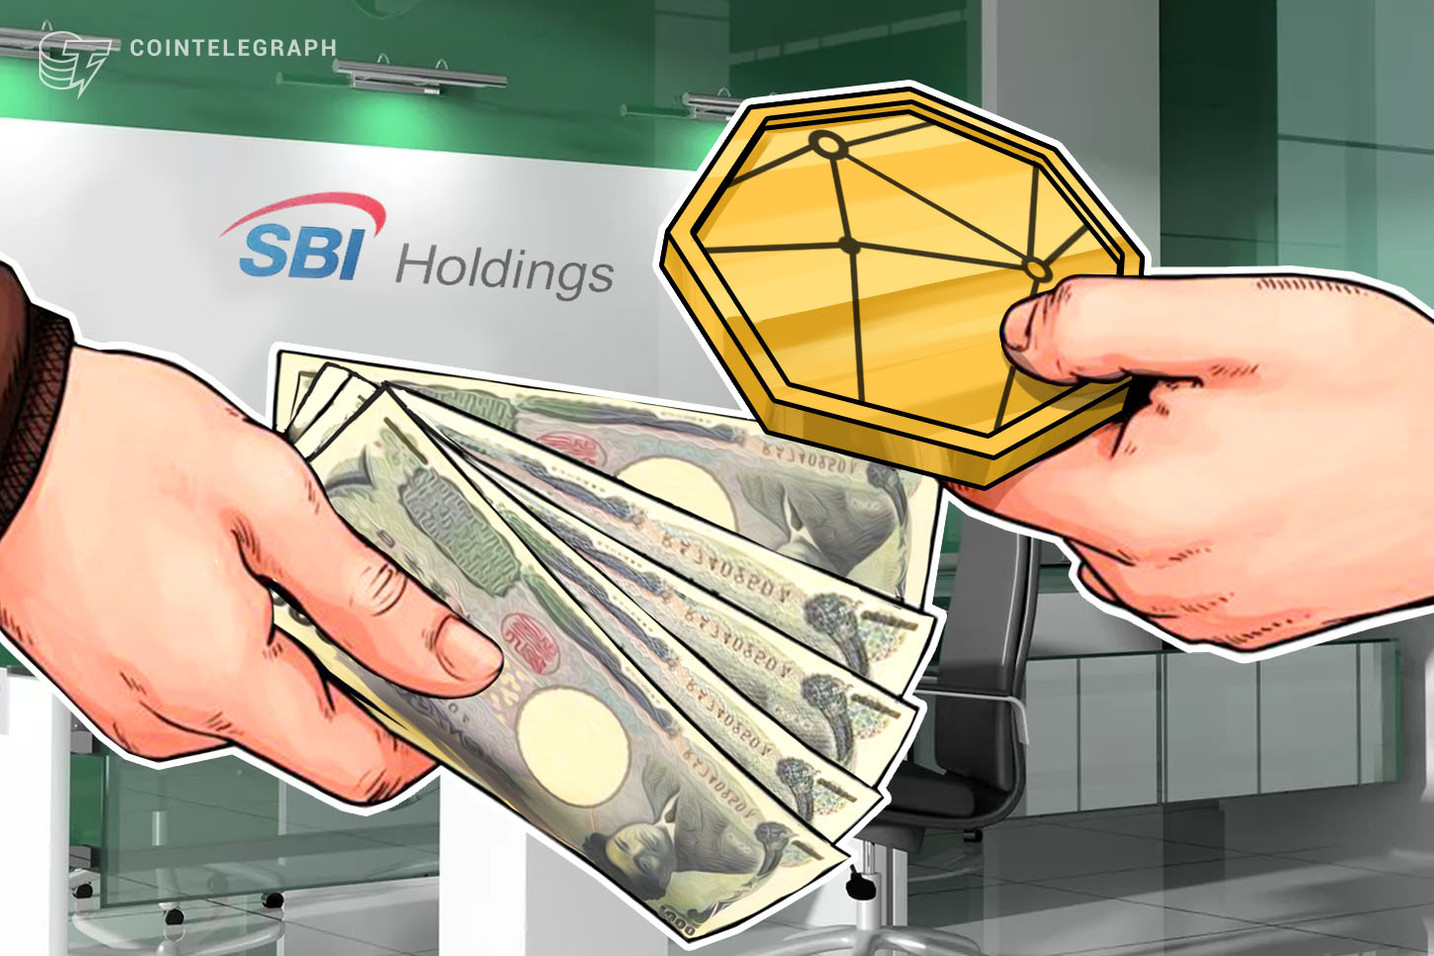 SBI Holdings lancerà il suo exchange di criptovalute quest'estate